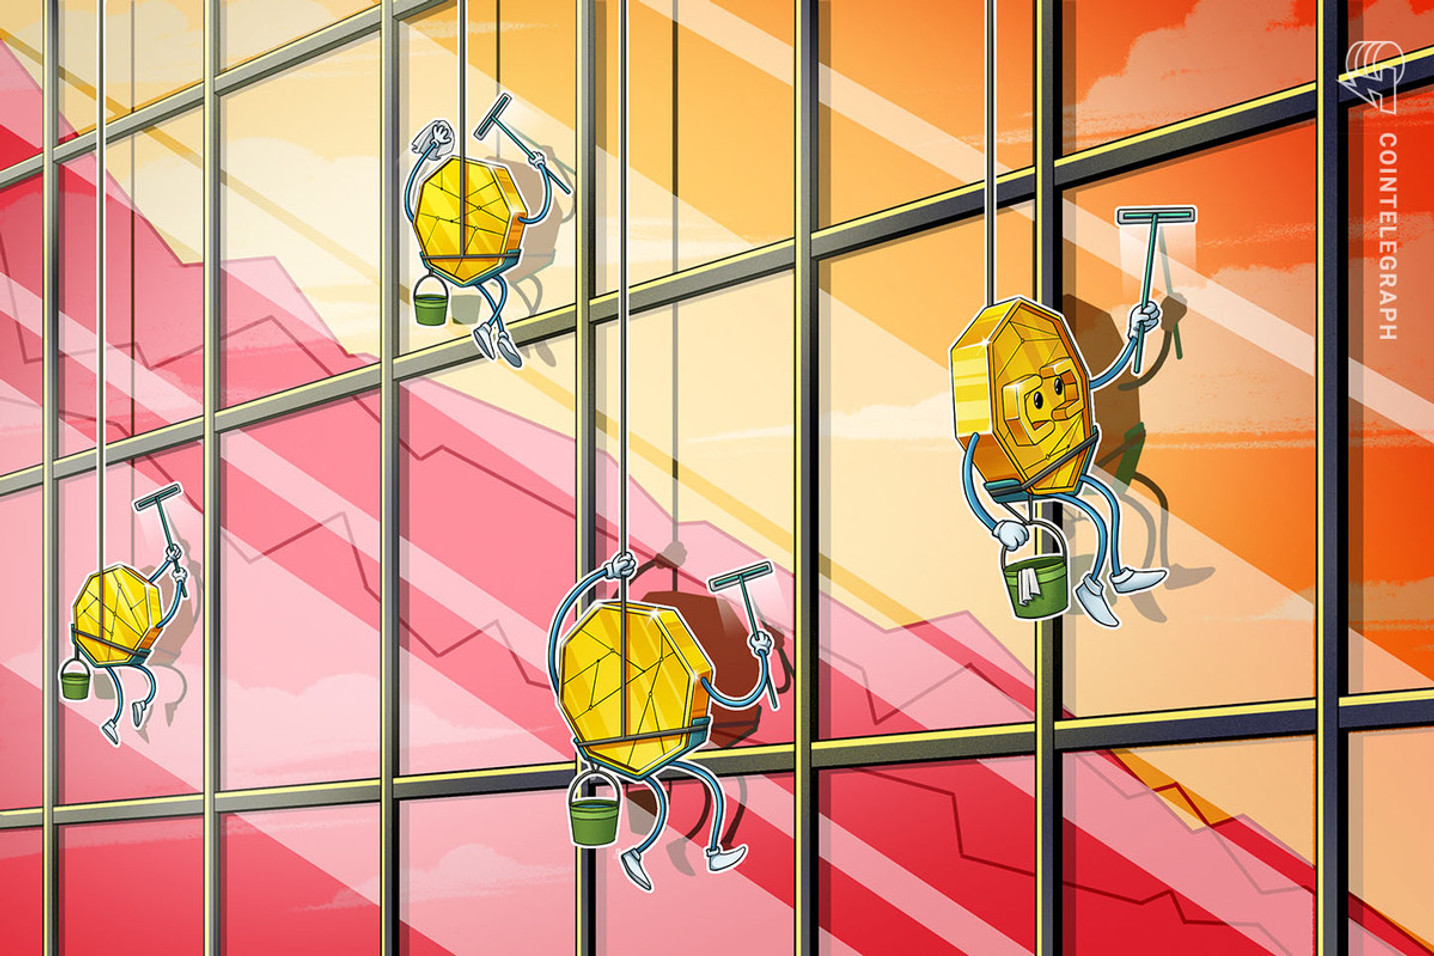 Crypto Markets Turn Red, While Bitcoin Price Takes a Hit Below $8,200